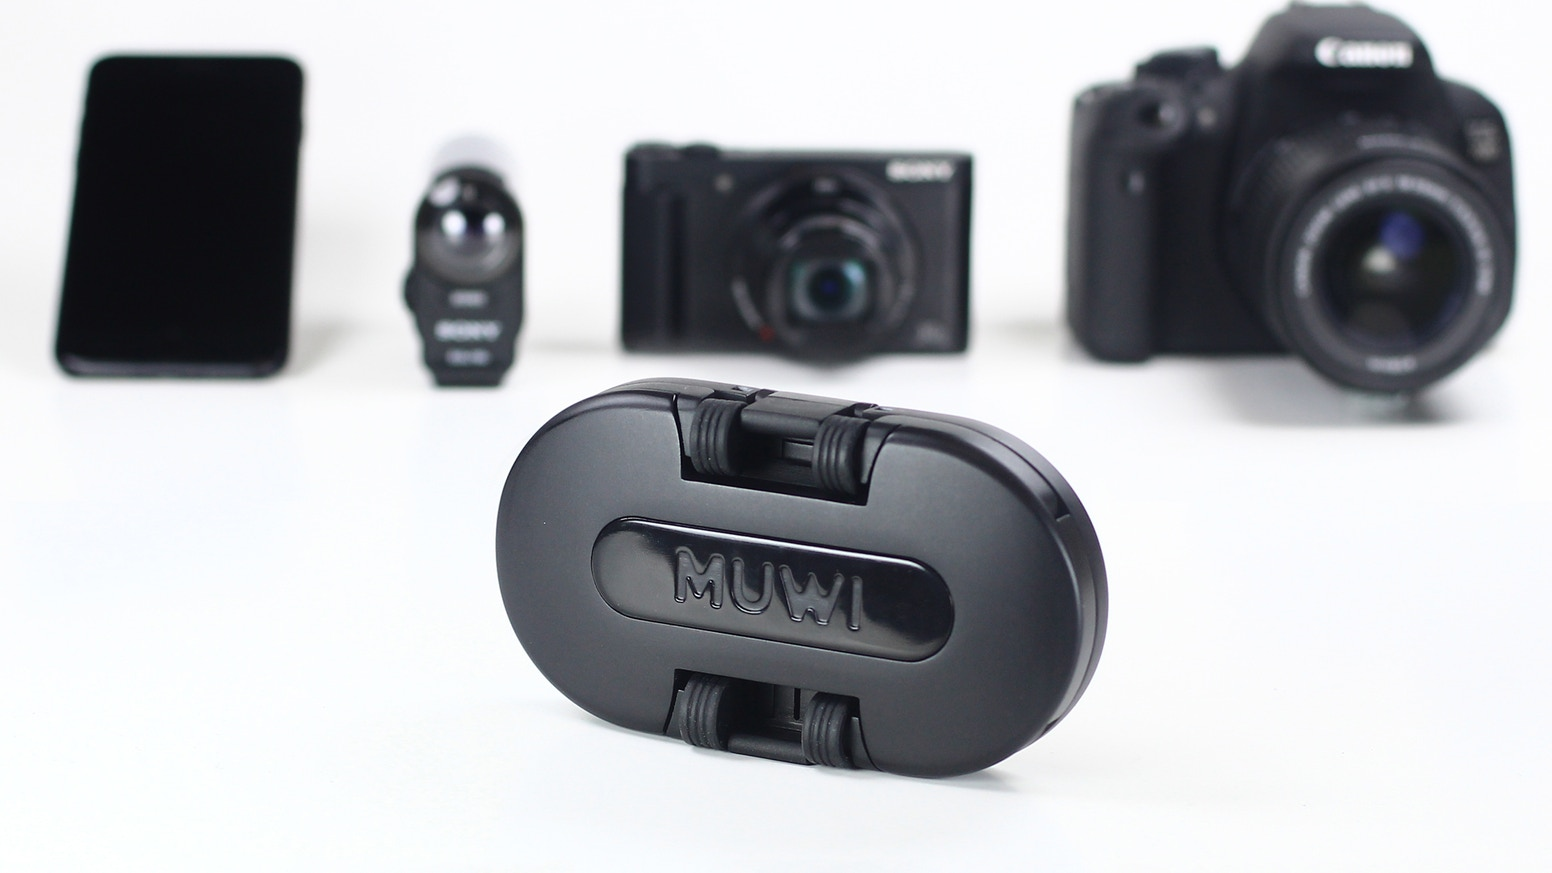 >> Muwi, the pocket-sized motorized dolly, and camera slider. >> Now it is possible for everyone to capture cinematic videos.>> Also do time-lapse videos & stop motion animations.>> With smartphones, mirrorless, action & DSLR cameras.